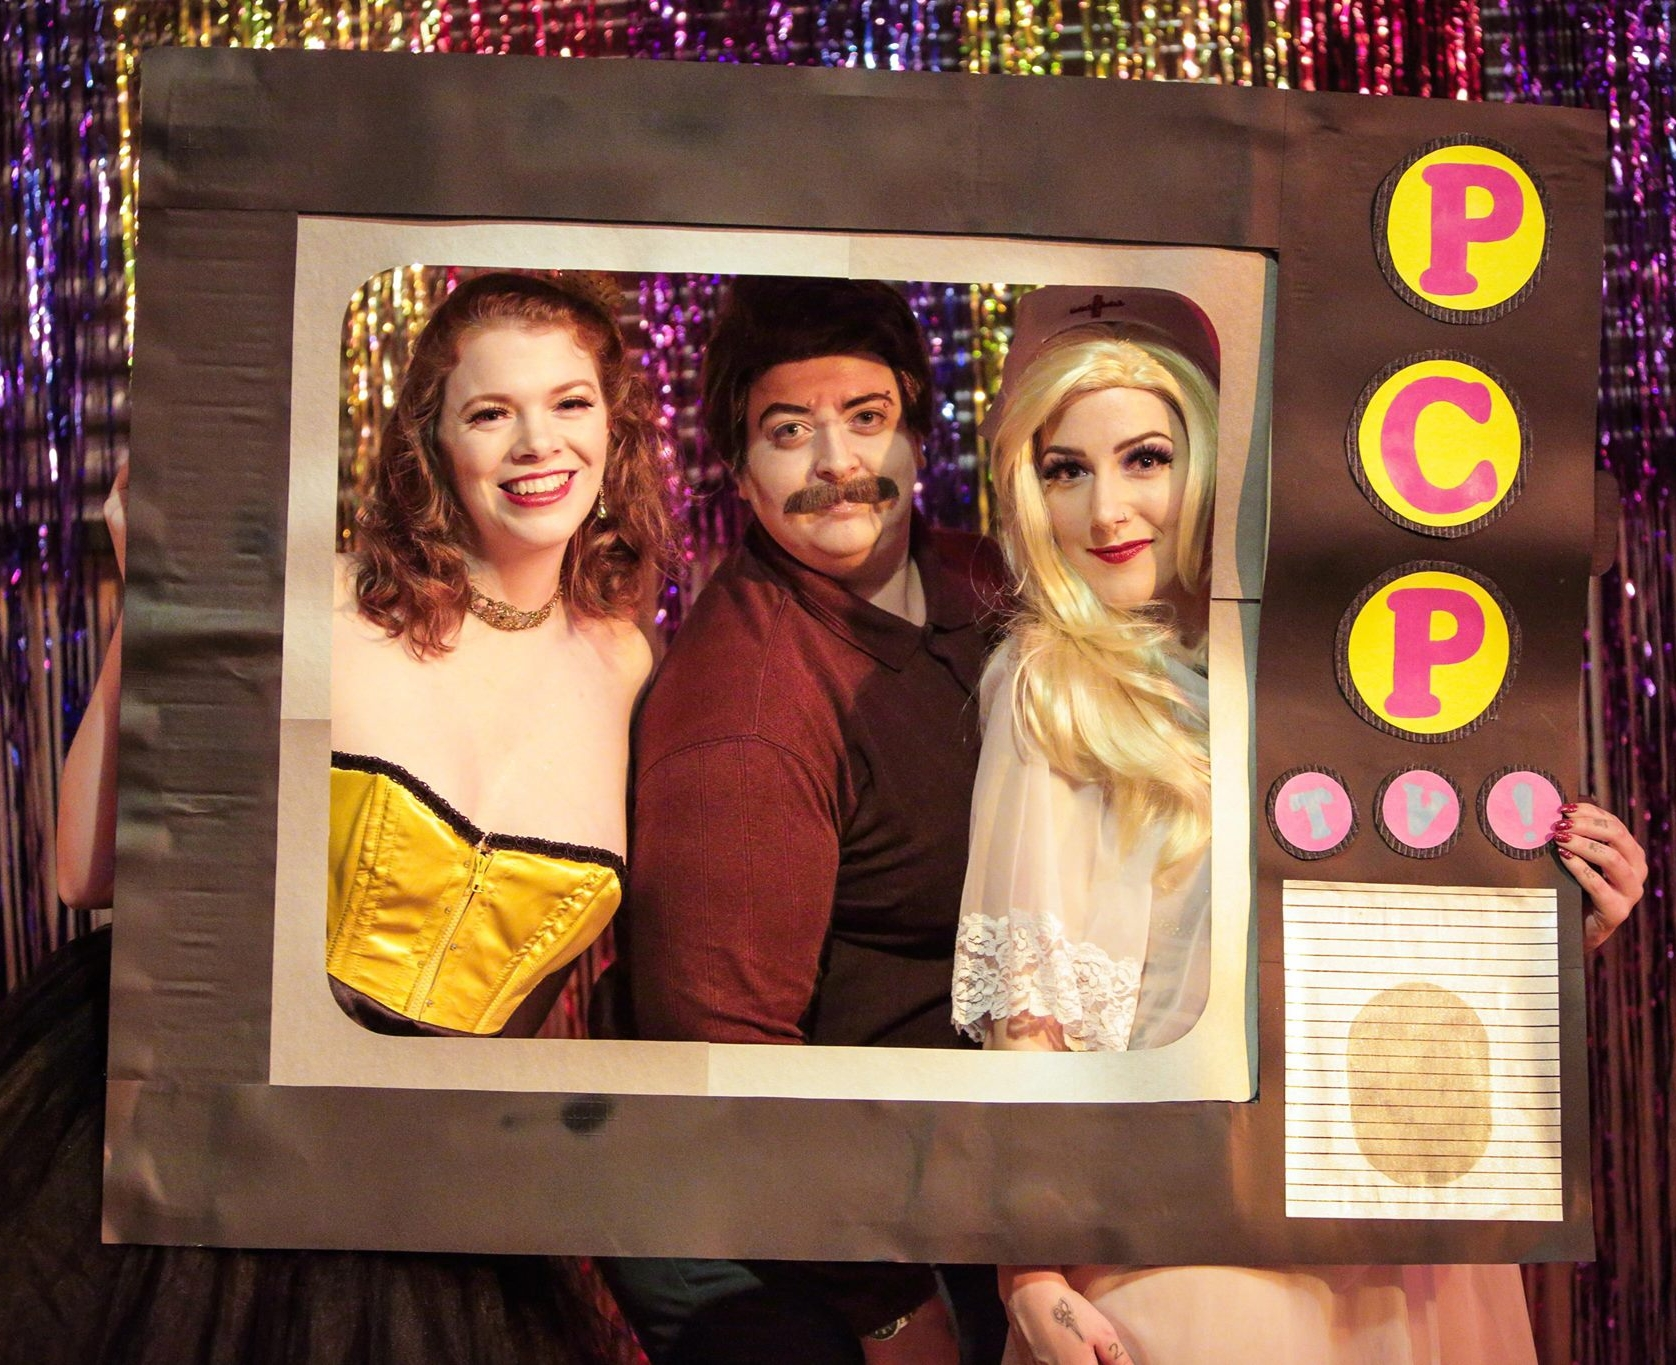 - Join Pop Culture Provocateurs for our monthly burlesque revue at Fuze Box!Friday, October 19thDoors at 8:30 // Show at 9Fuze Box // 12 Central Ave$12 at the doorRAFFLE PRIZES FROM OUR SPONSOR, THAT STORE